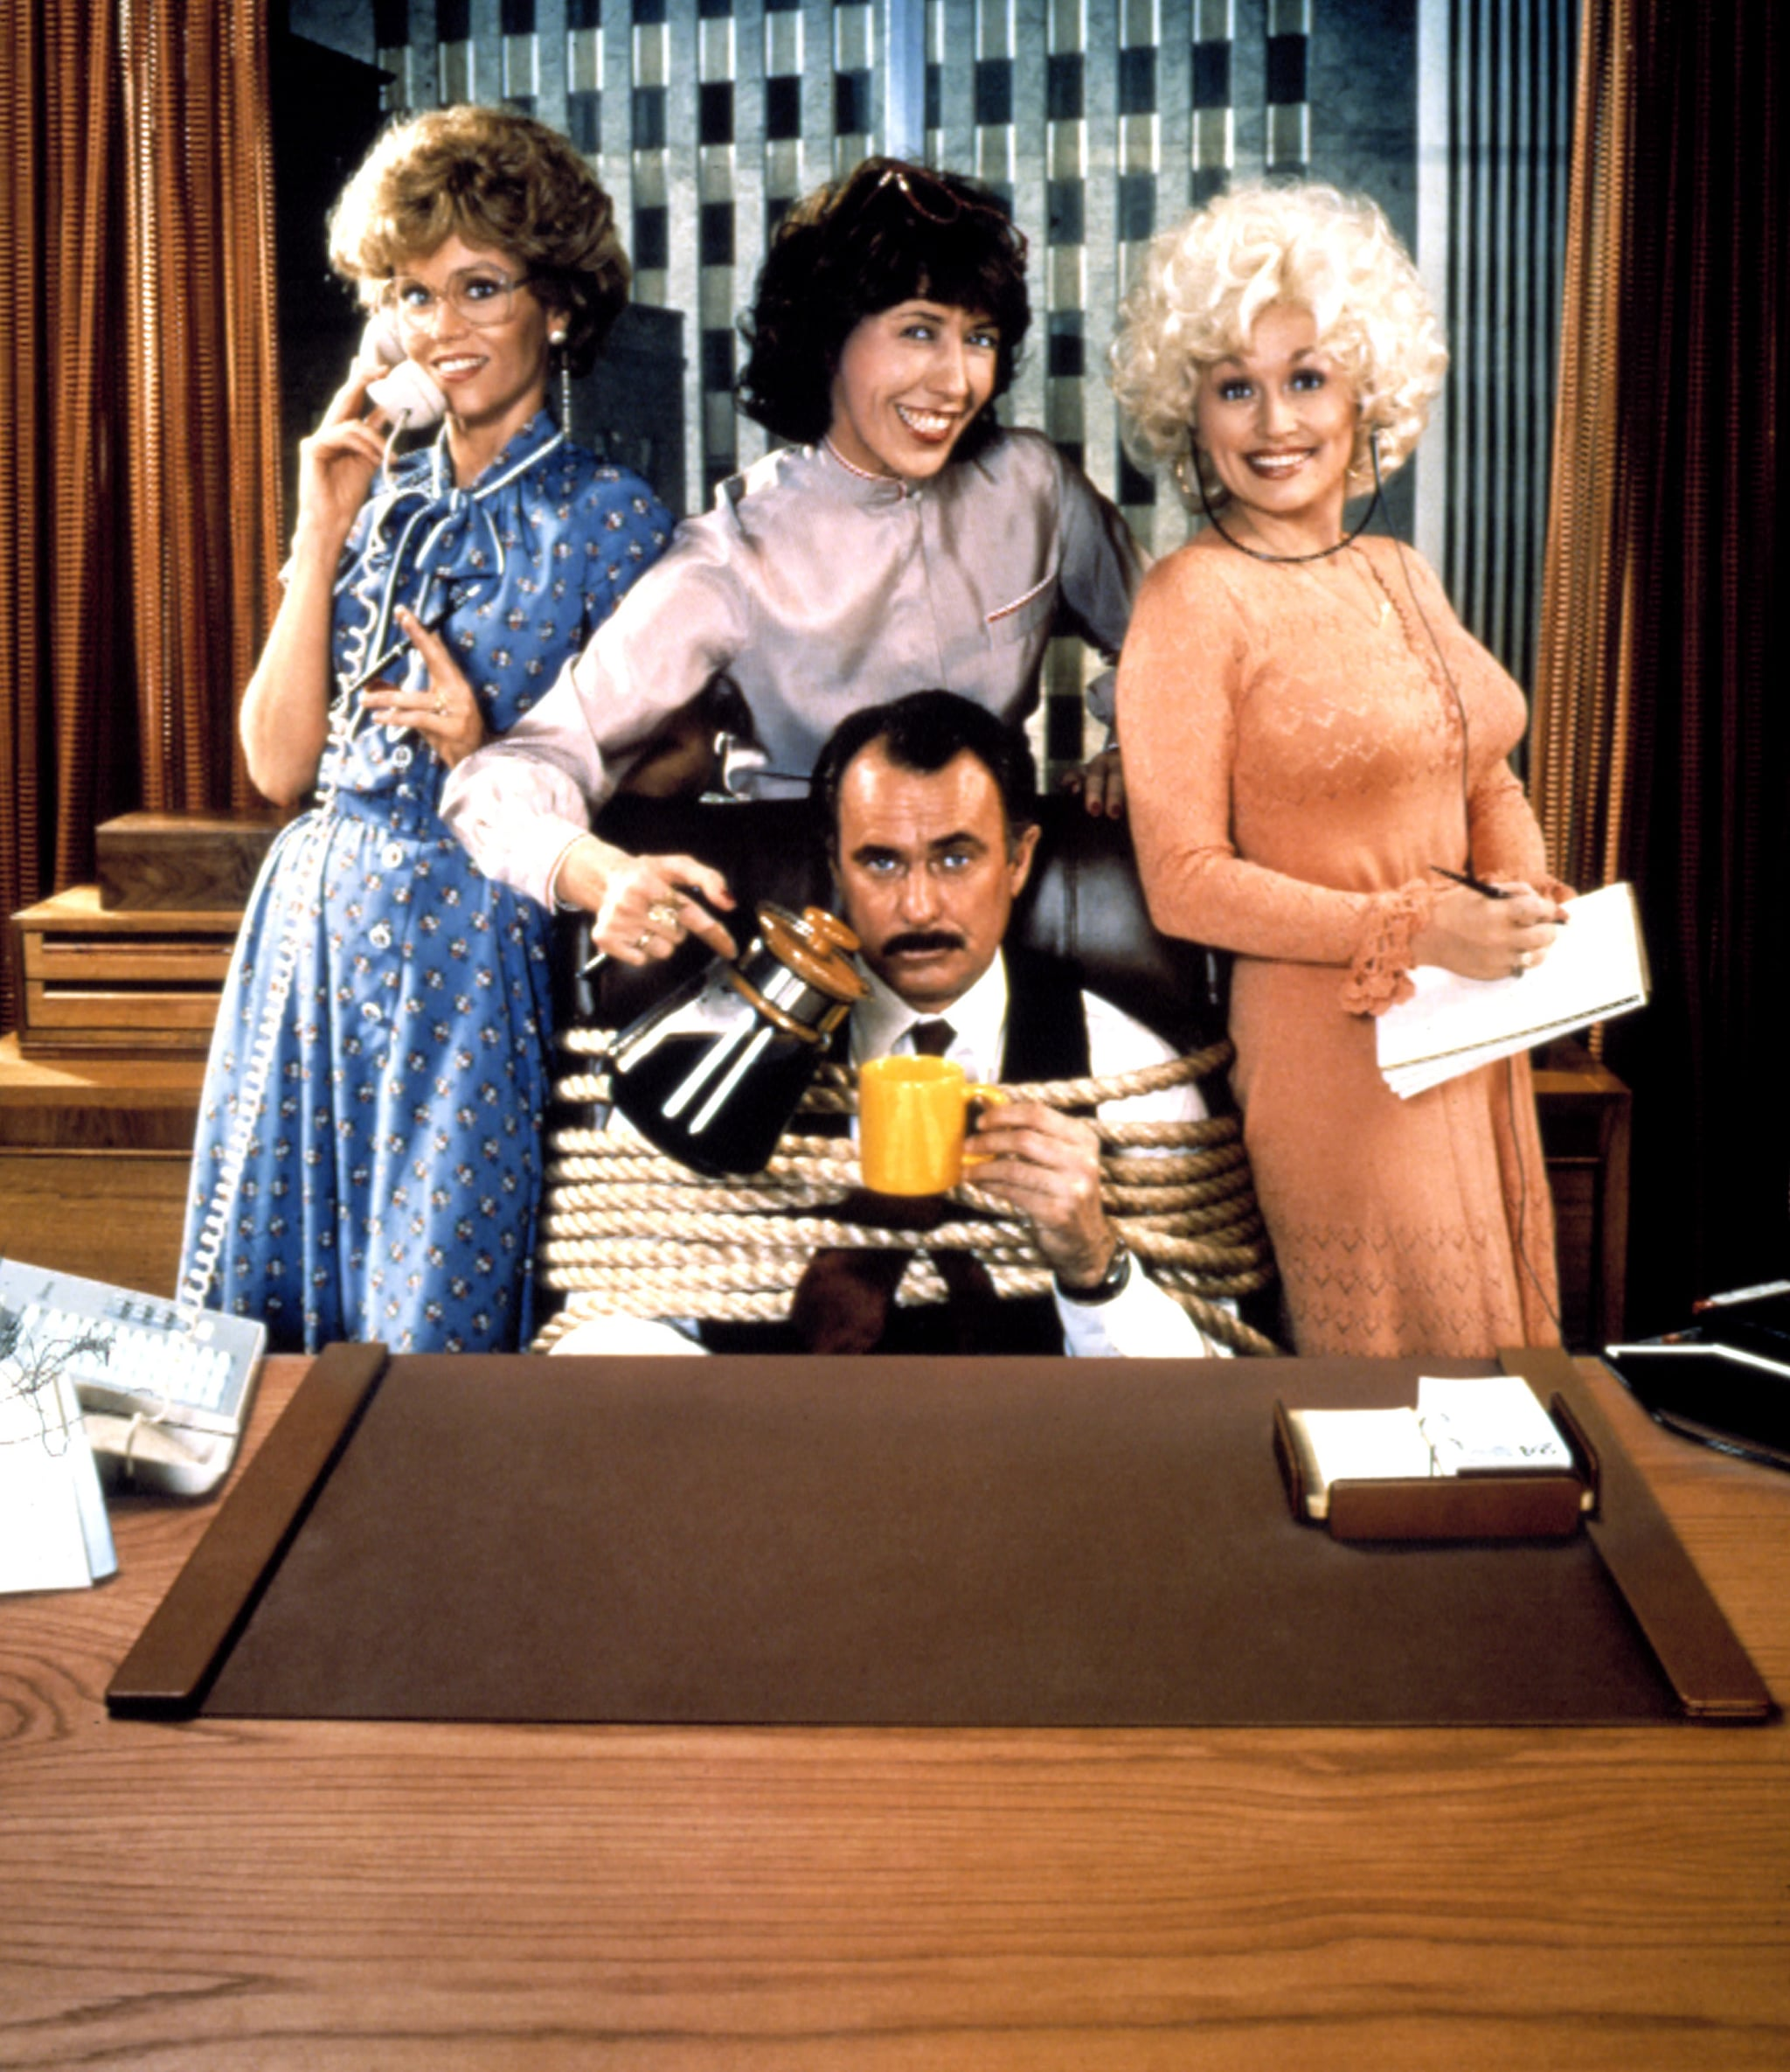 NINE TO FIVE, (aka 9 TO 5), Jane Fonda, Lily Tomlin, Dolly Parton, Dabney Coleman (seated), 1980, TM and Copyright (c)20th Century Fox Film Corp. All rights reserved.